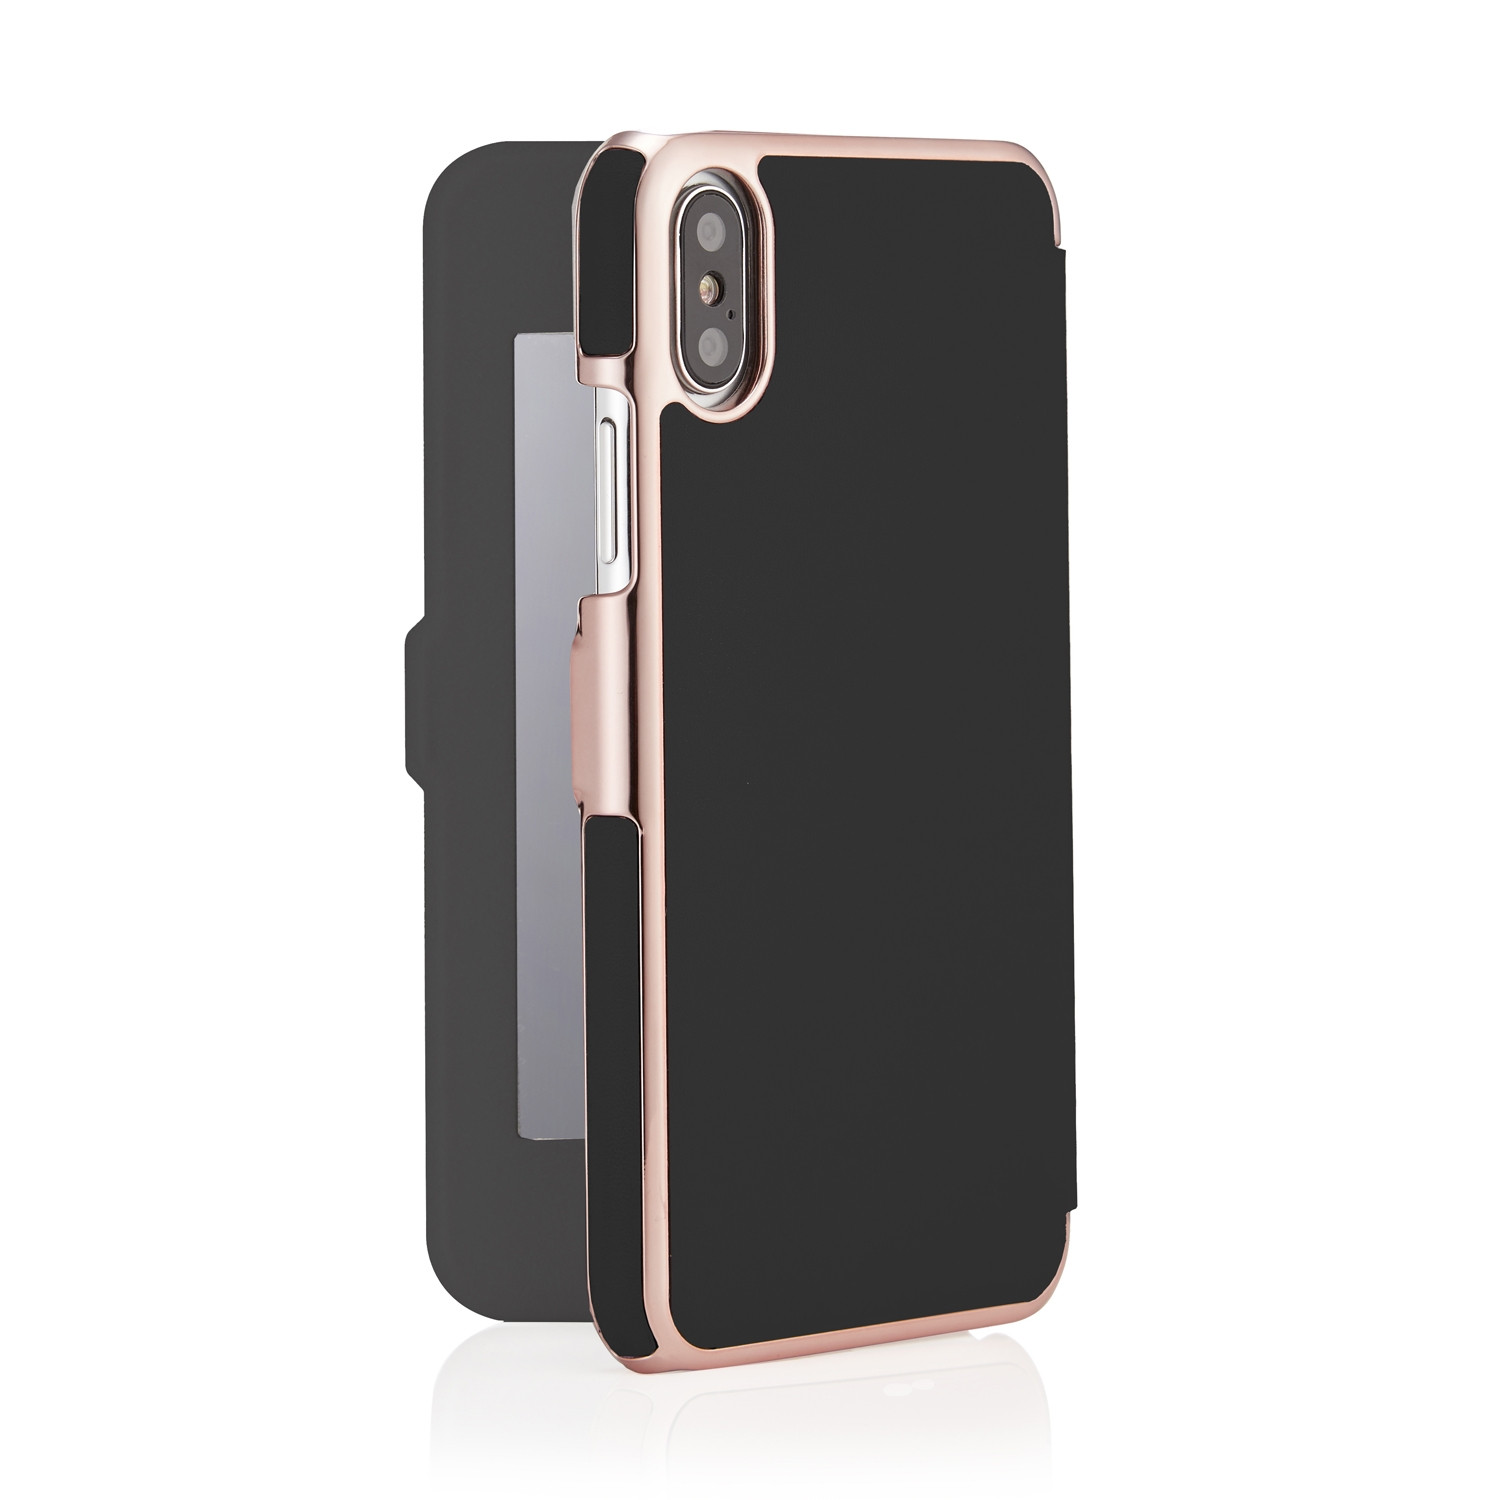 finest selection d6fef 92af0 iPhone X/XS Slim Mirror Case - Black & Rose Gold (Online Exclusive)